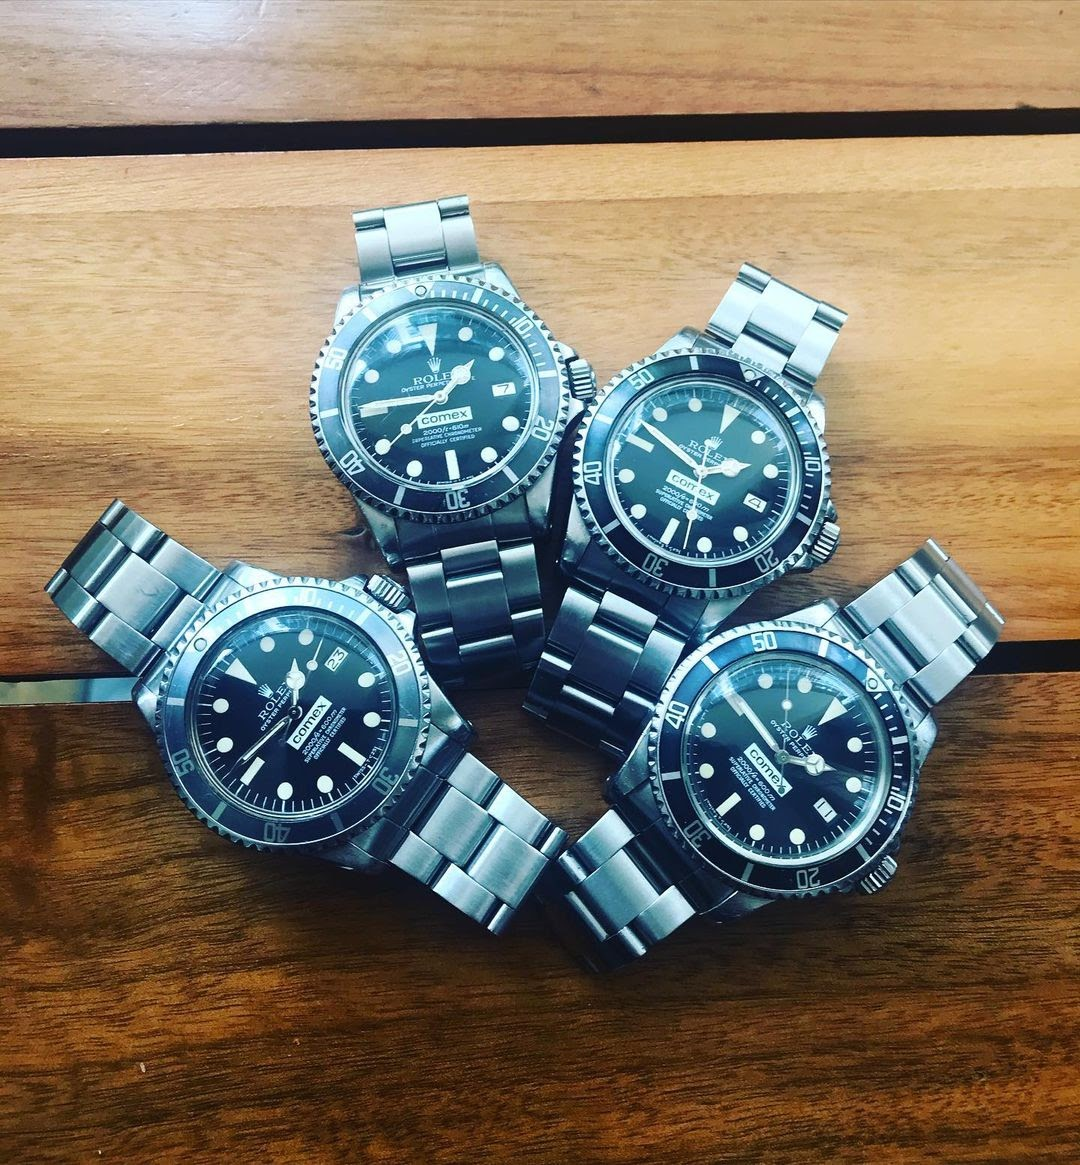 4 Rolex submariners special edition